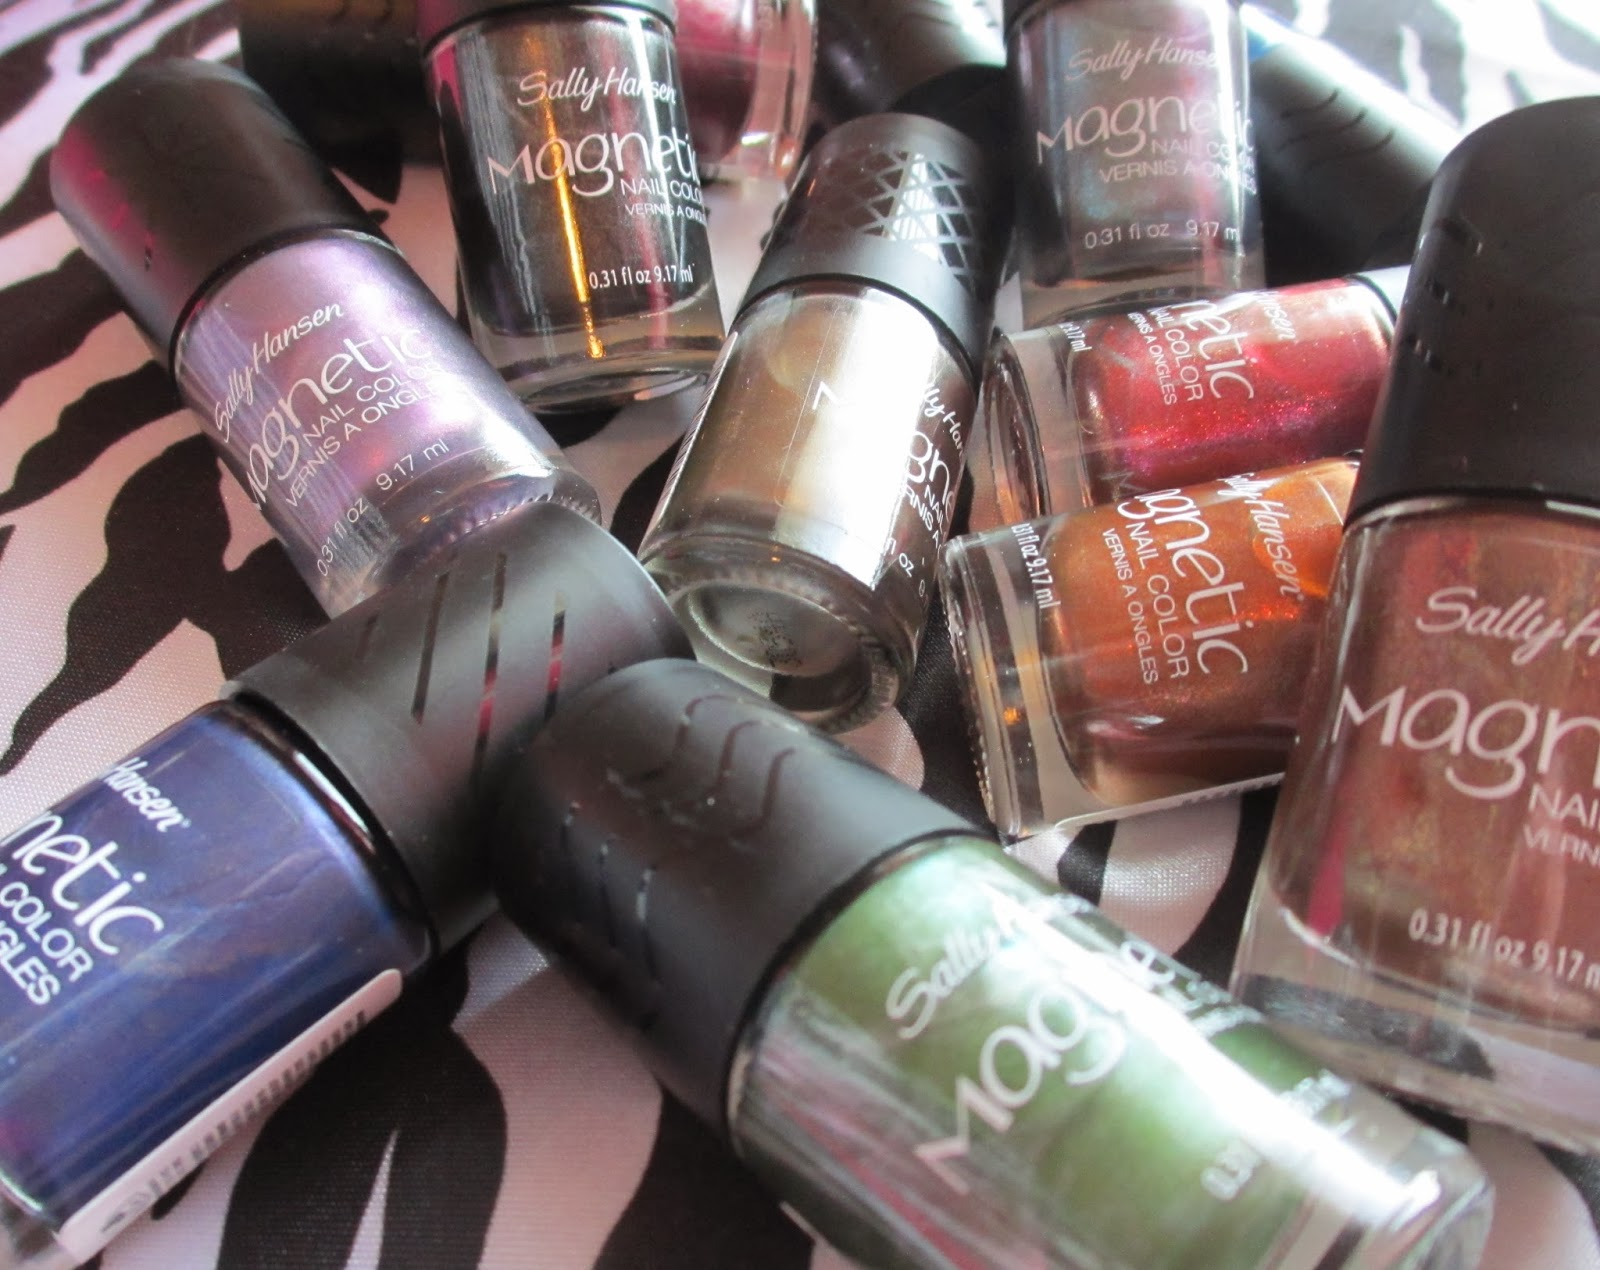 Hot Glue & Sparkle: SALLY HANSEN MAGNETIC NAIL POLISHES, $1 AT ...